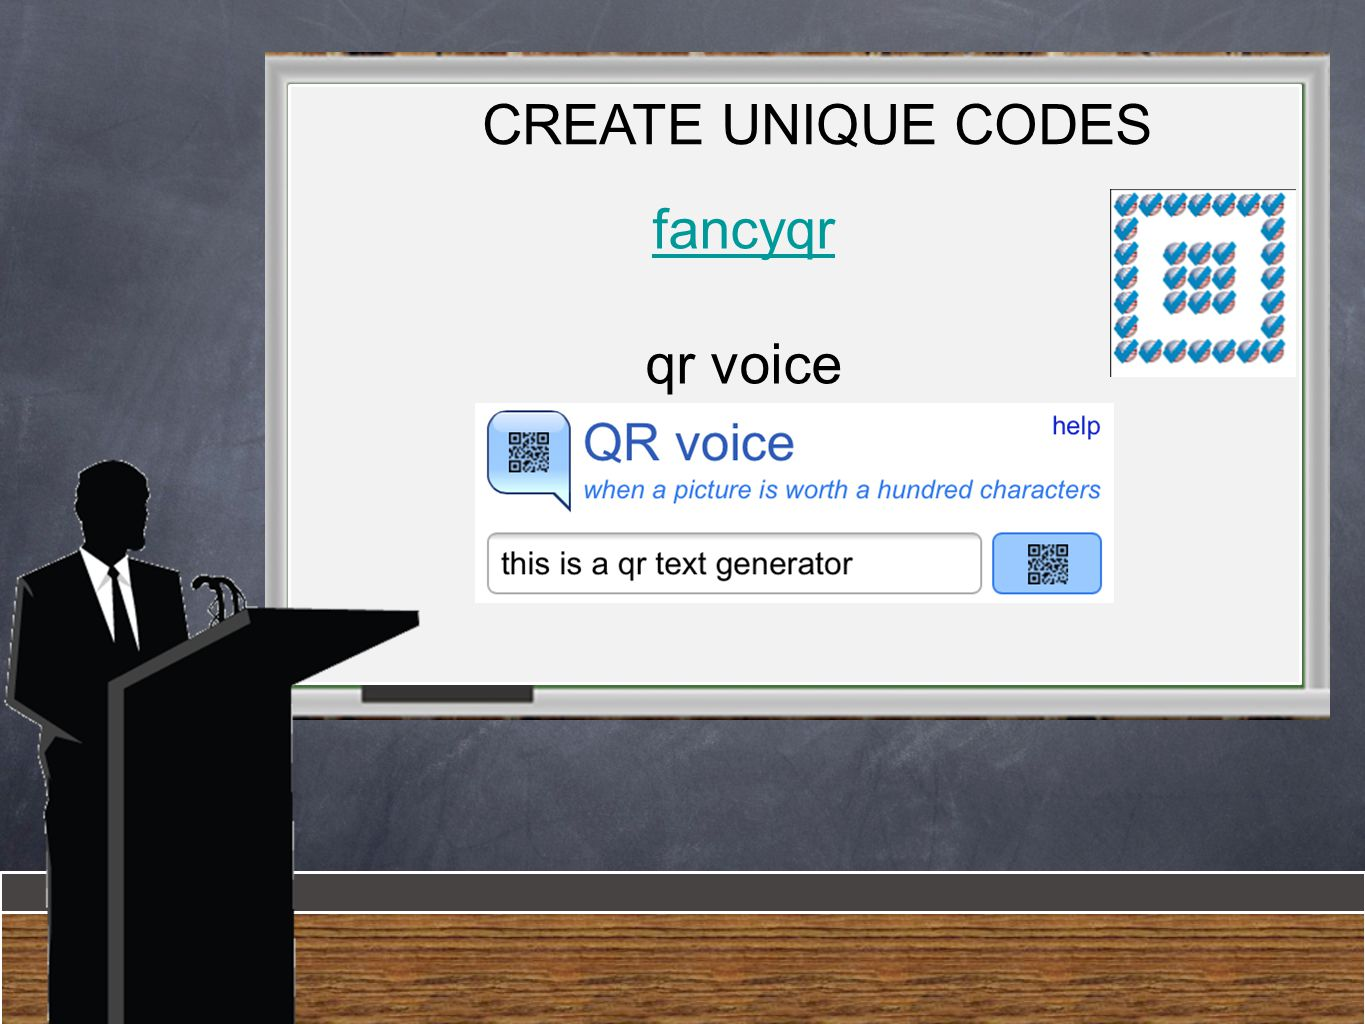 fancyqr qr voice CREATE UNIQUE CODES